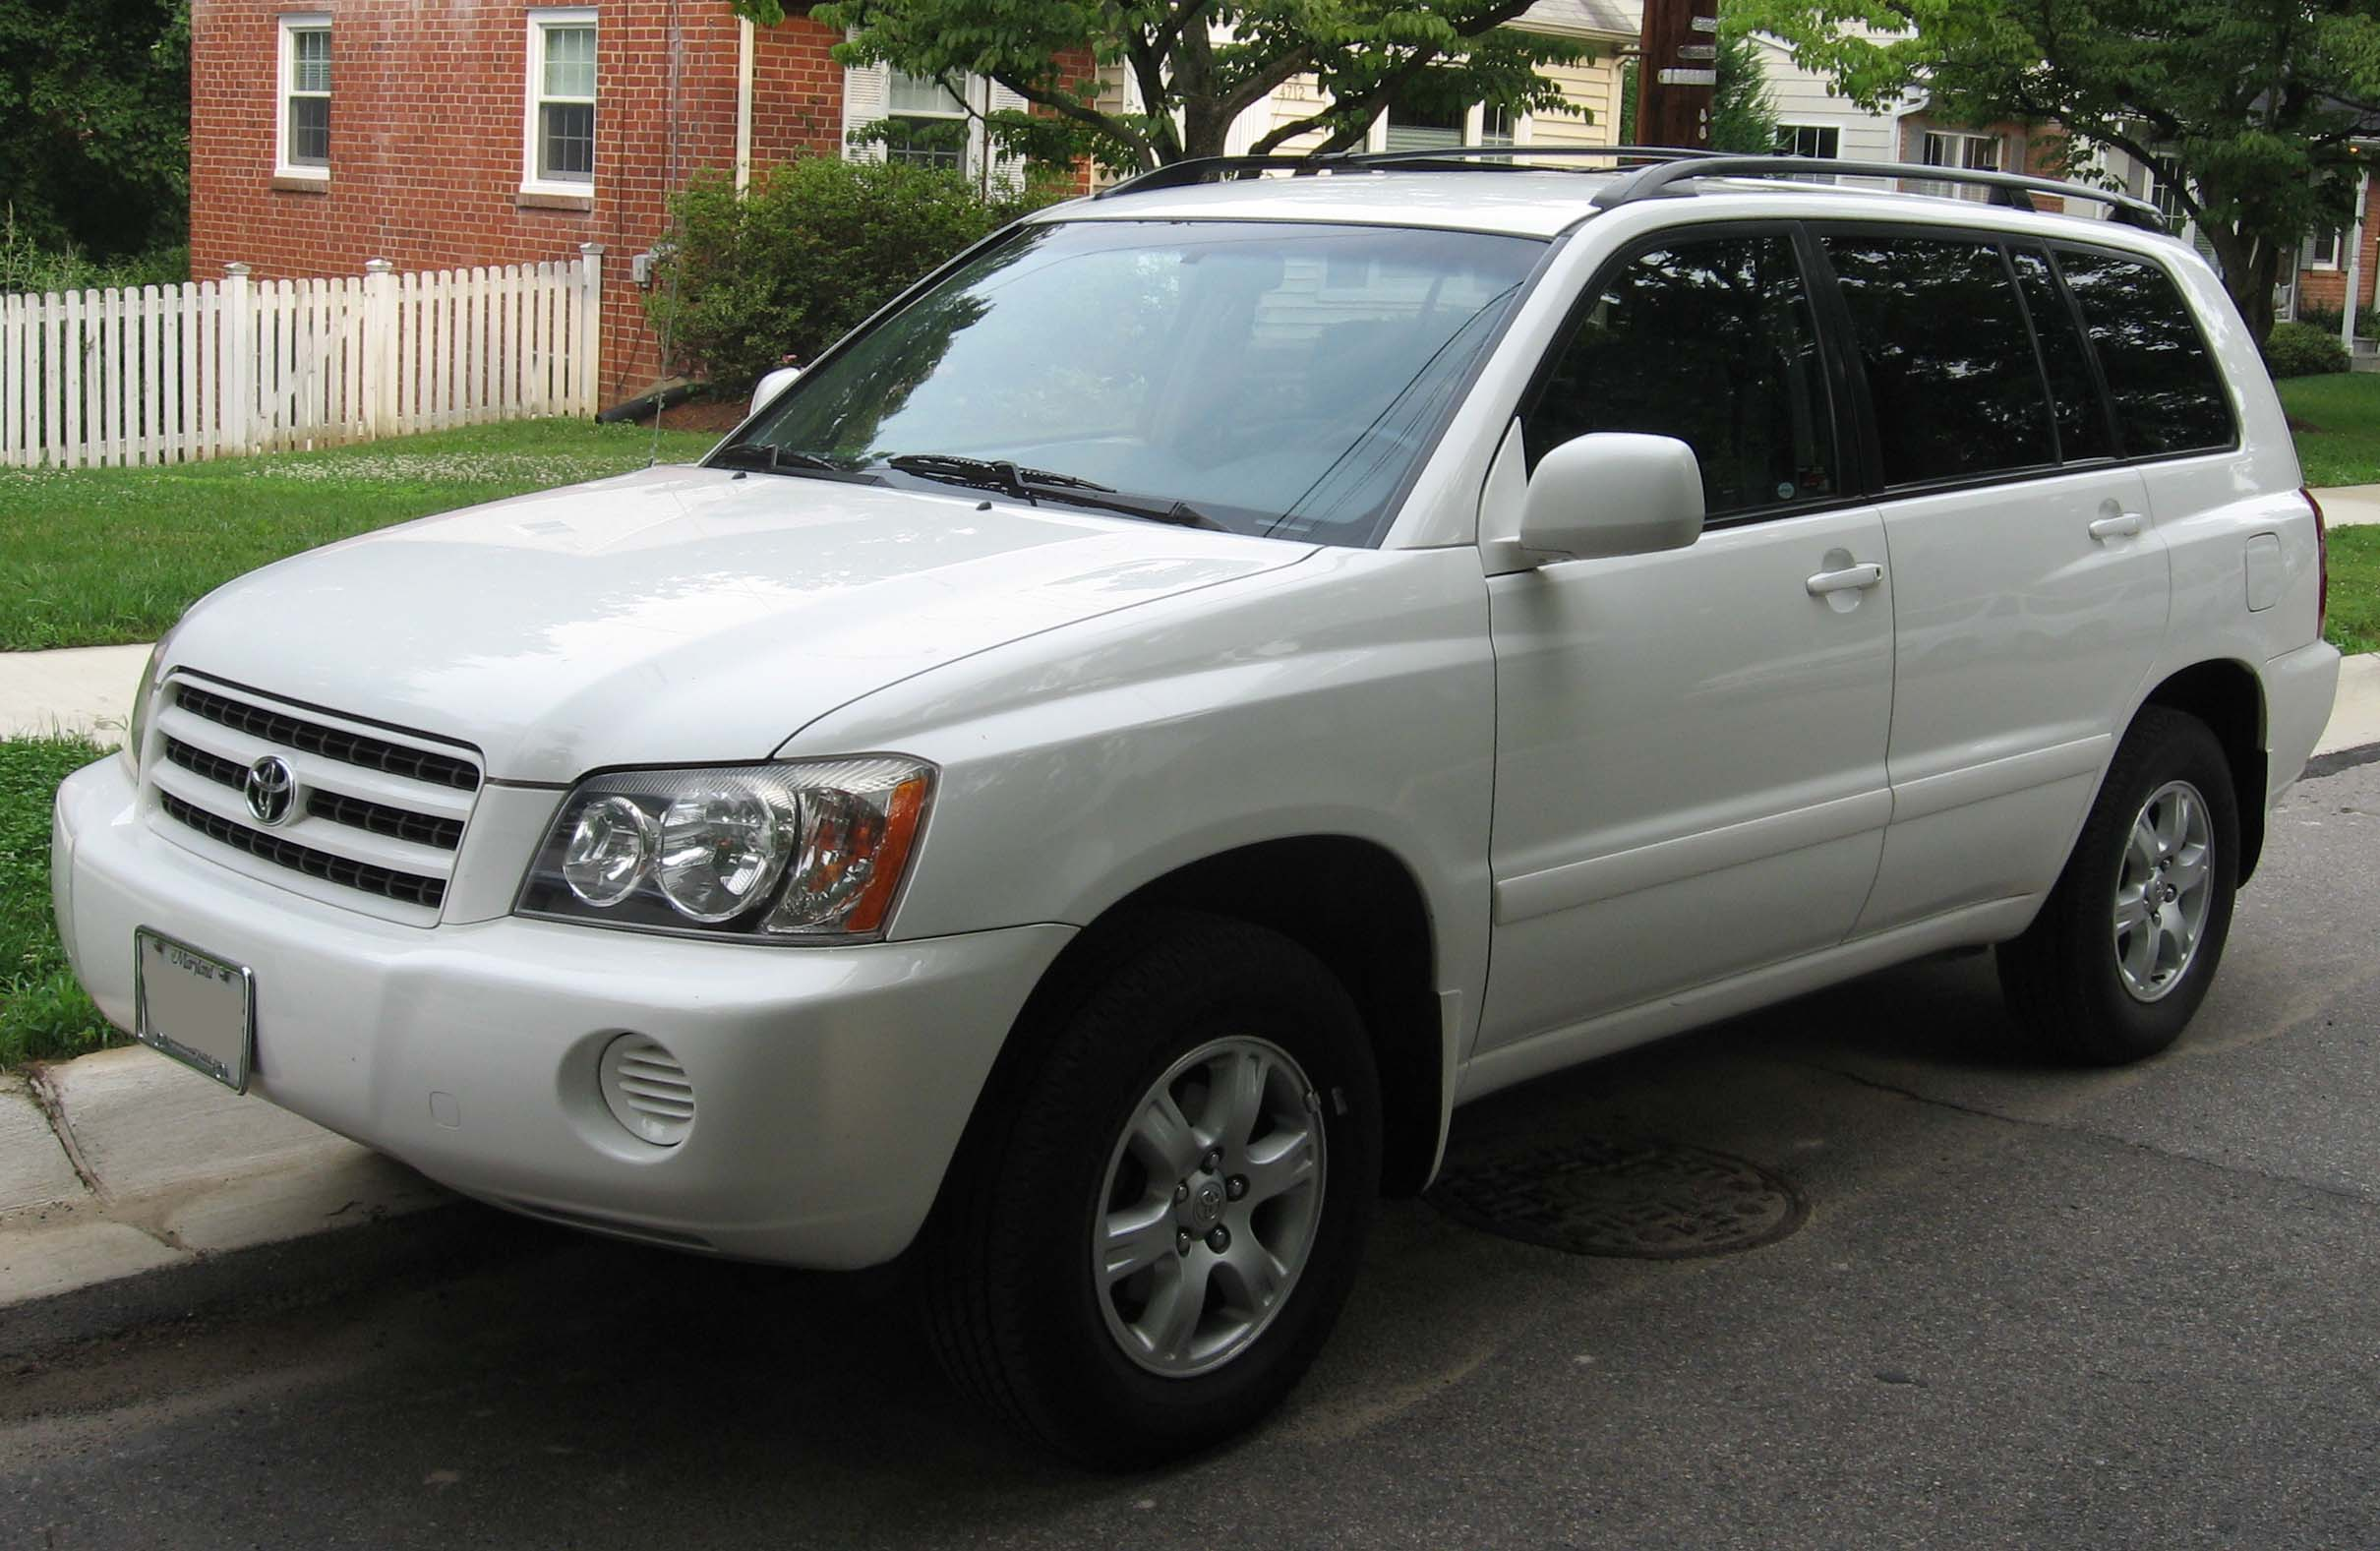 File:2001-03 Toyota Highlander.jpg - Wikimedia Commons